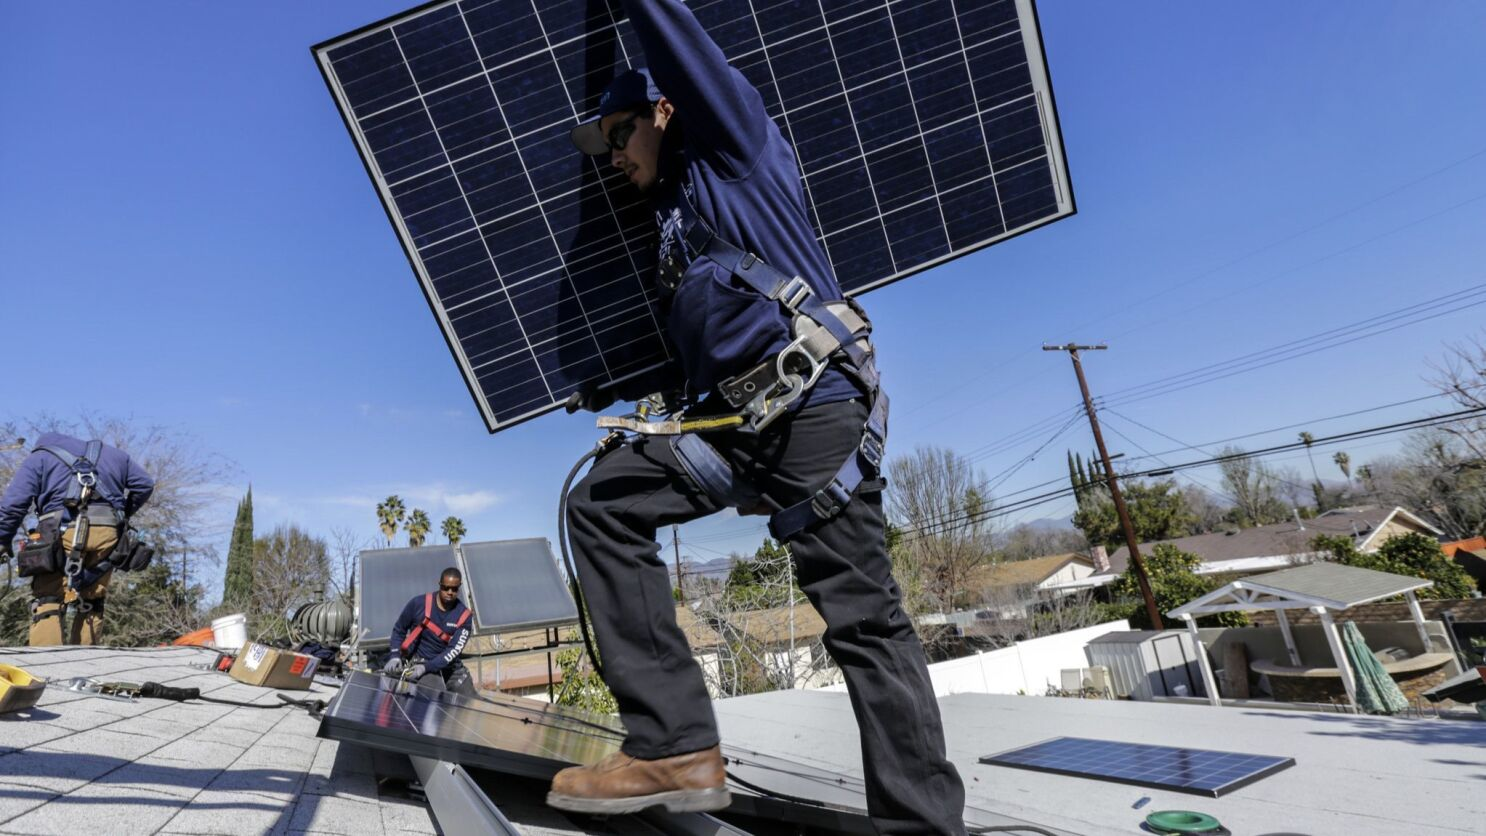 Best Companies To Work For In Sacramento 2020 Starting in 2020, all new homes in California must come with solar